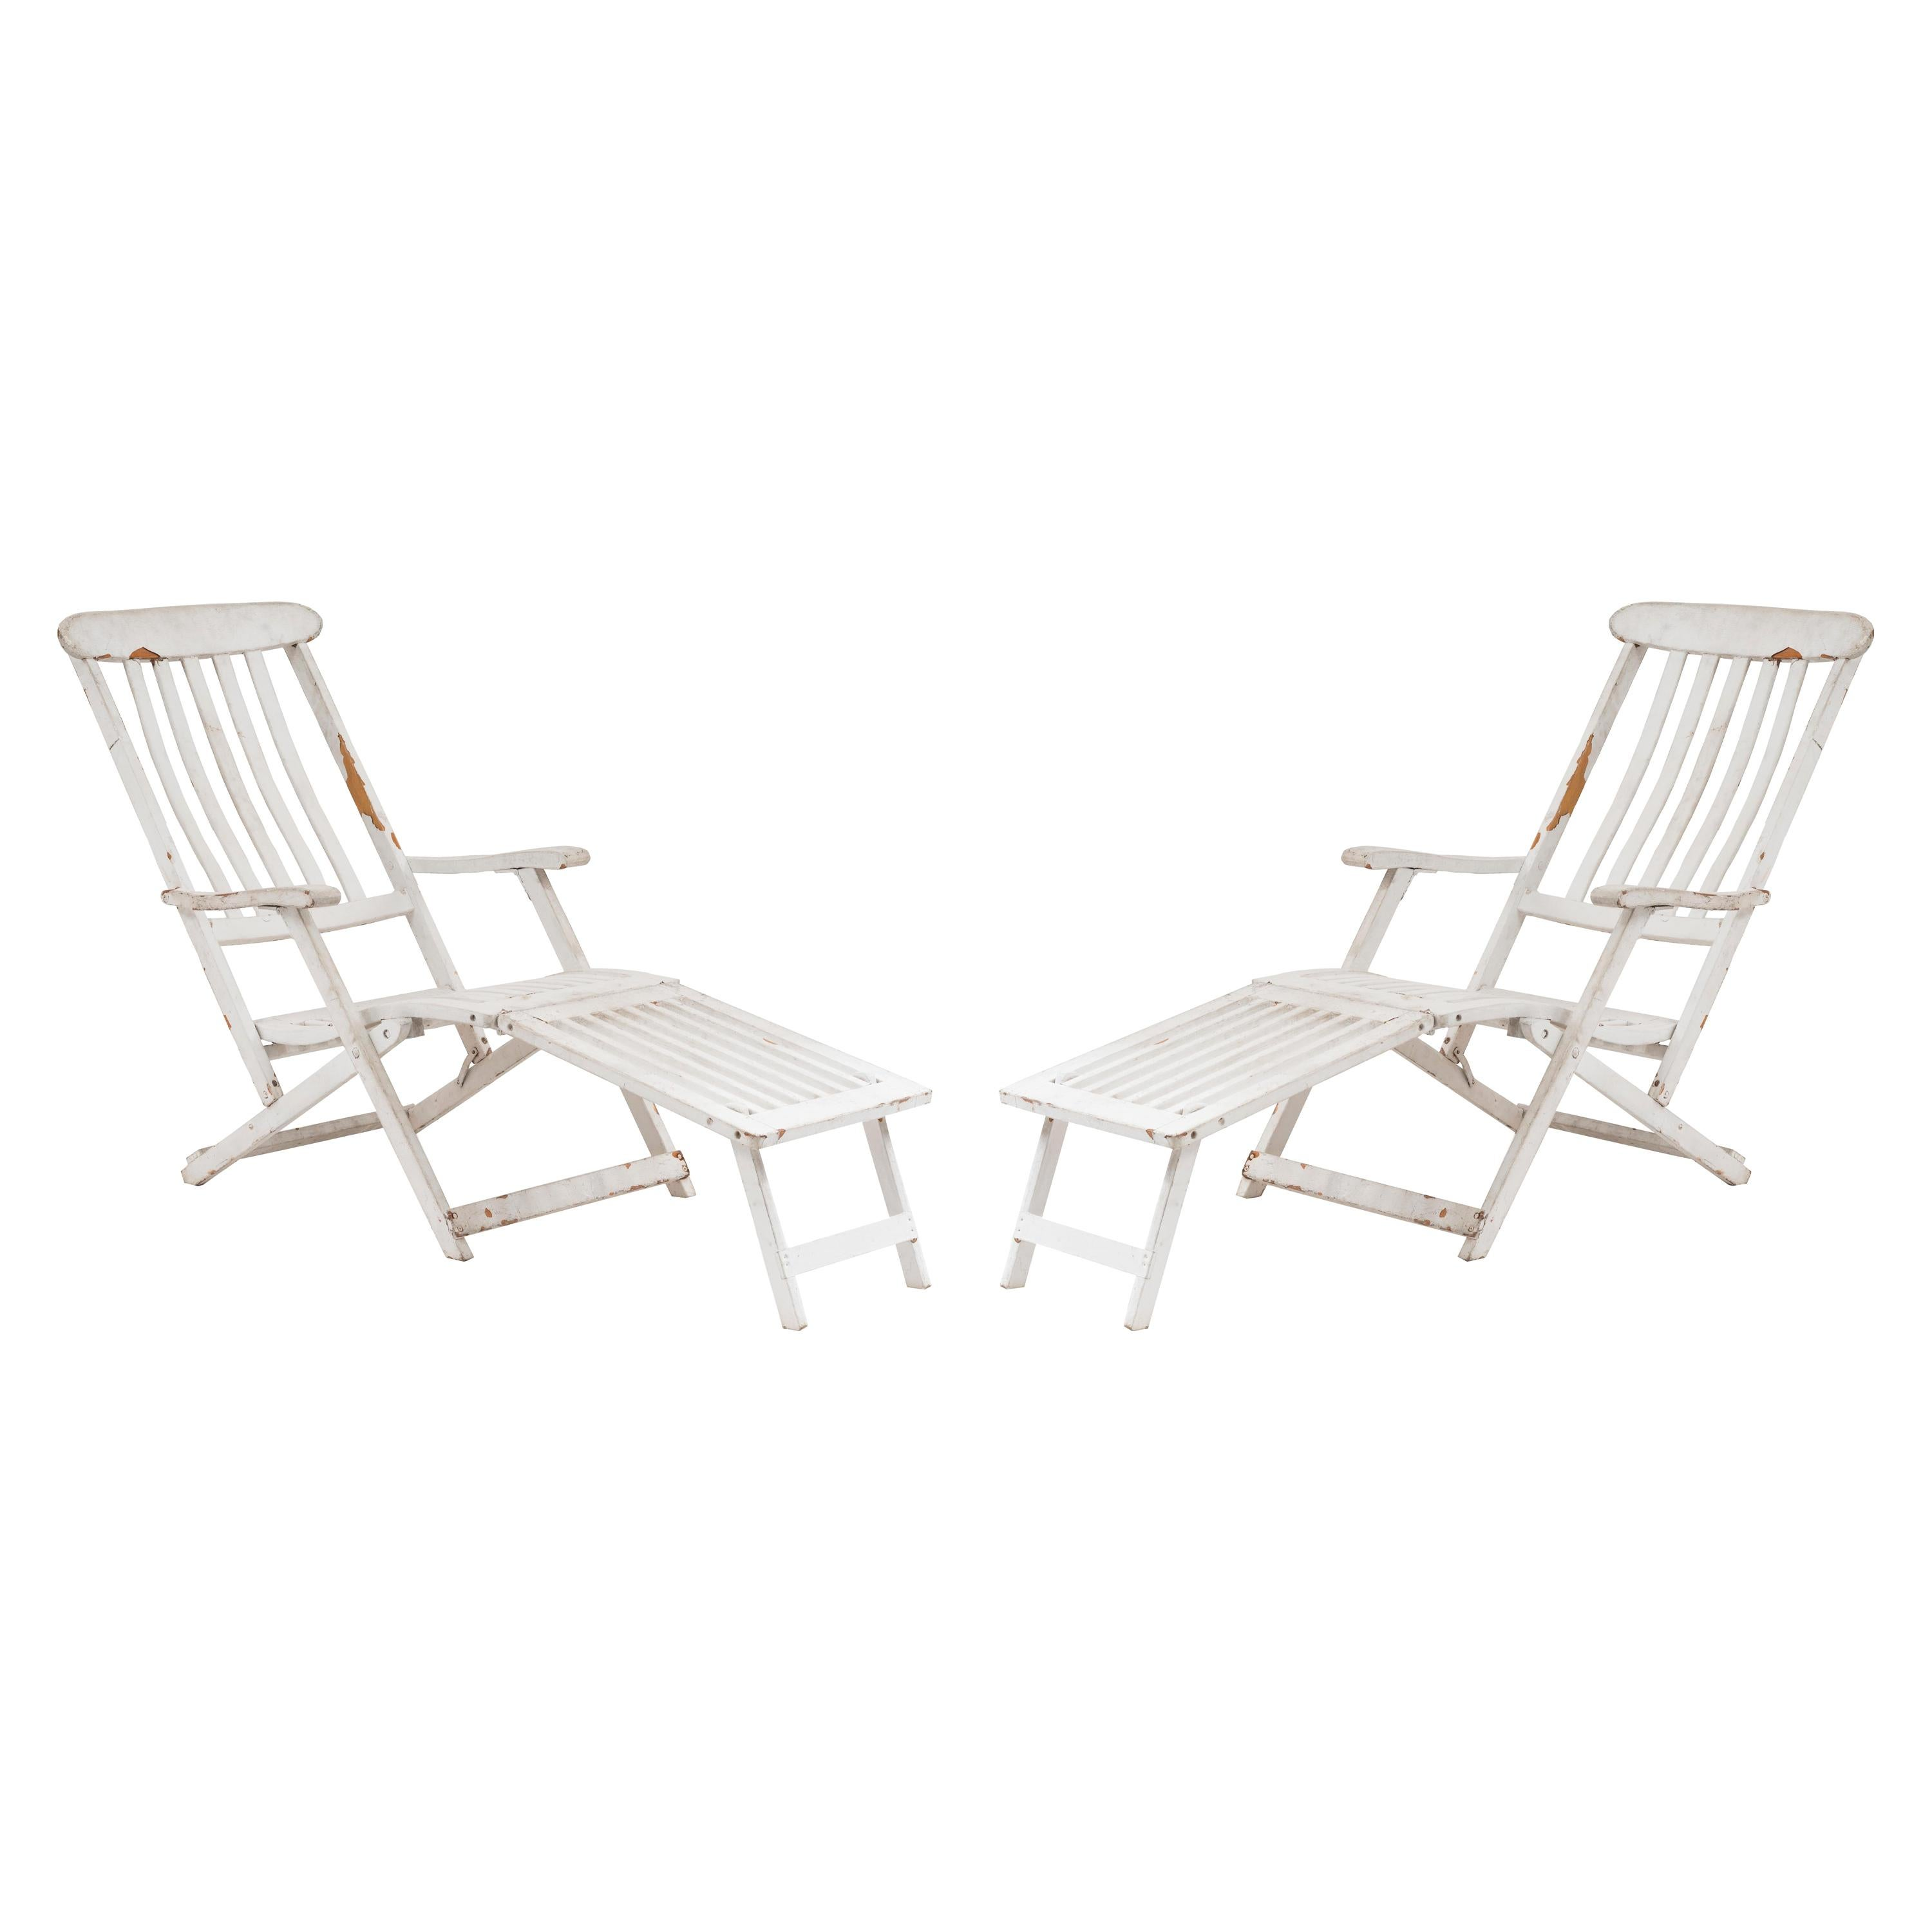 Outdoor White Folding Deck Chairs